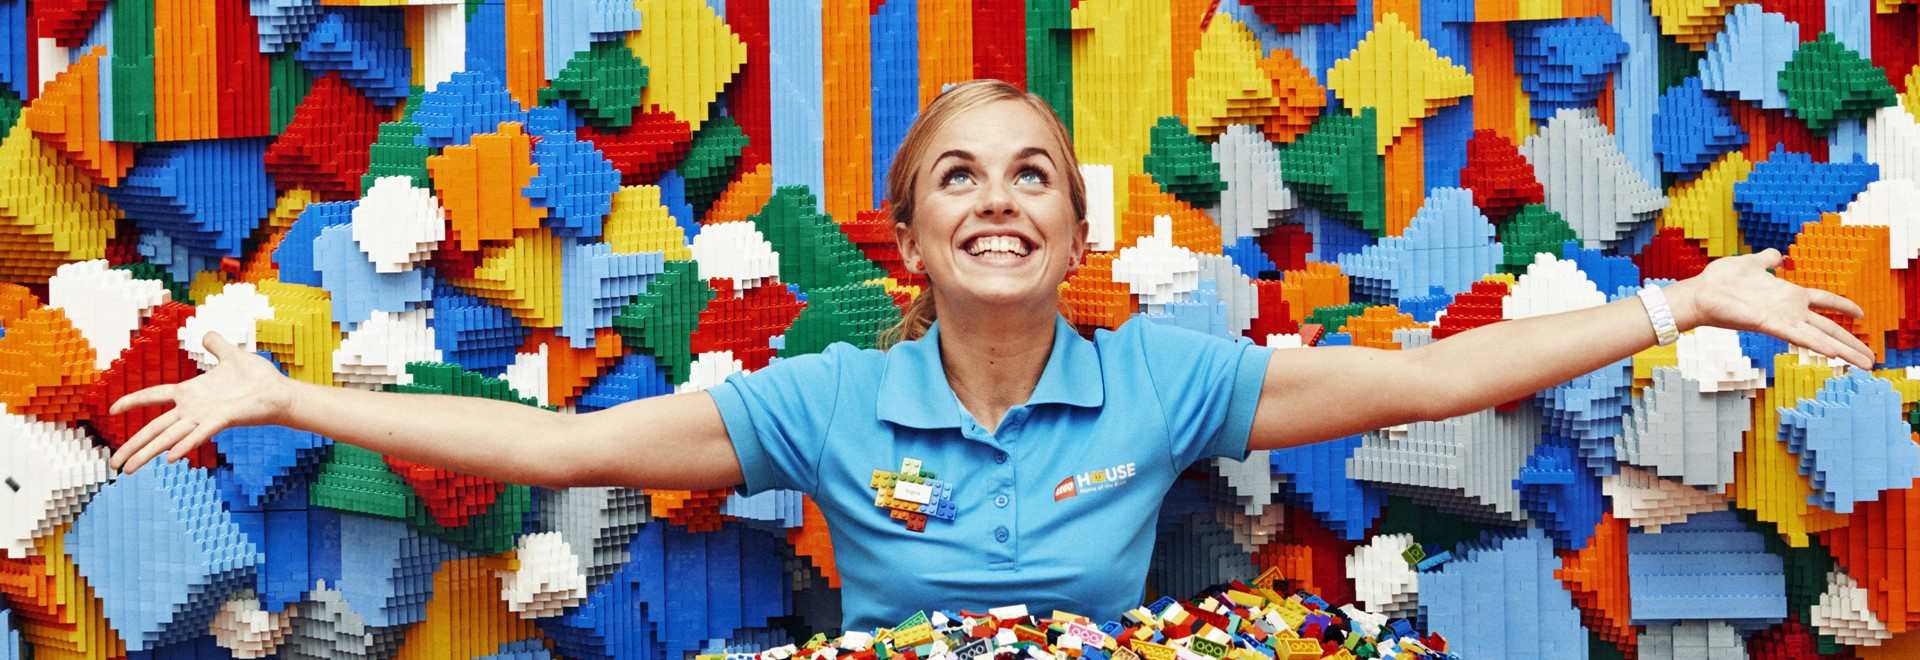 Topbanner-vinterferie-lego-house